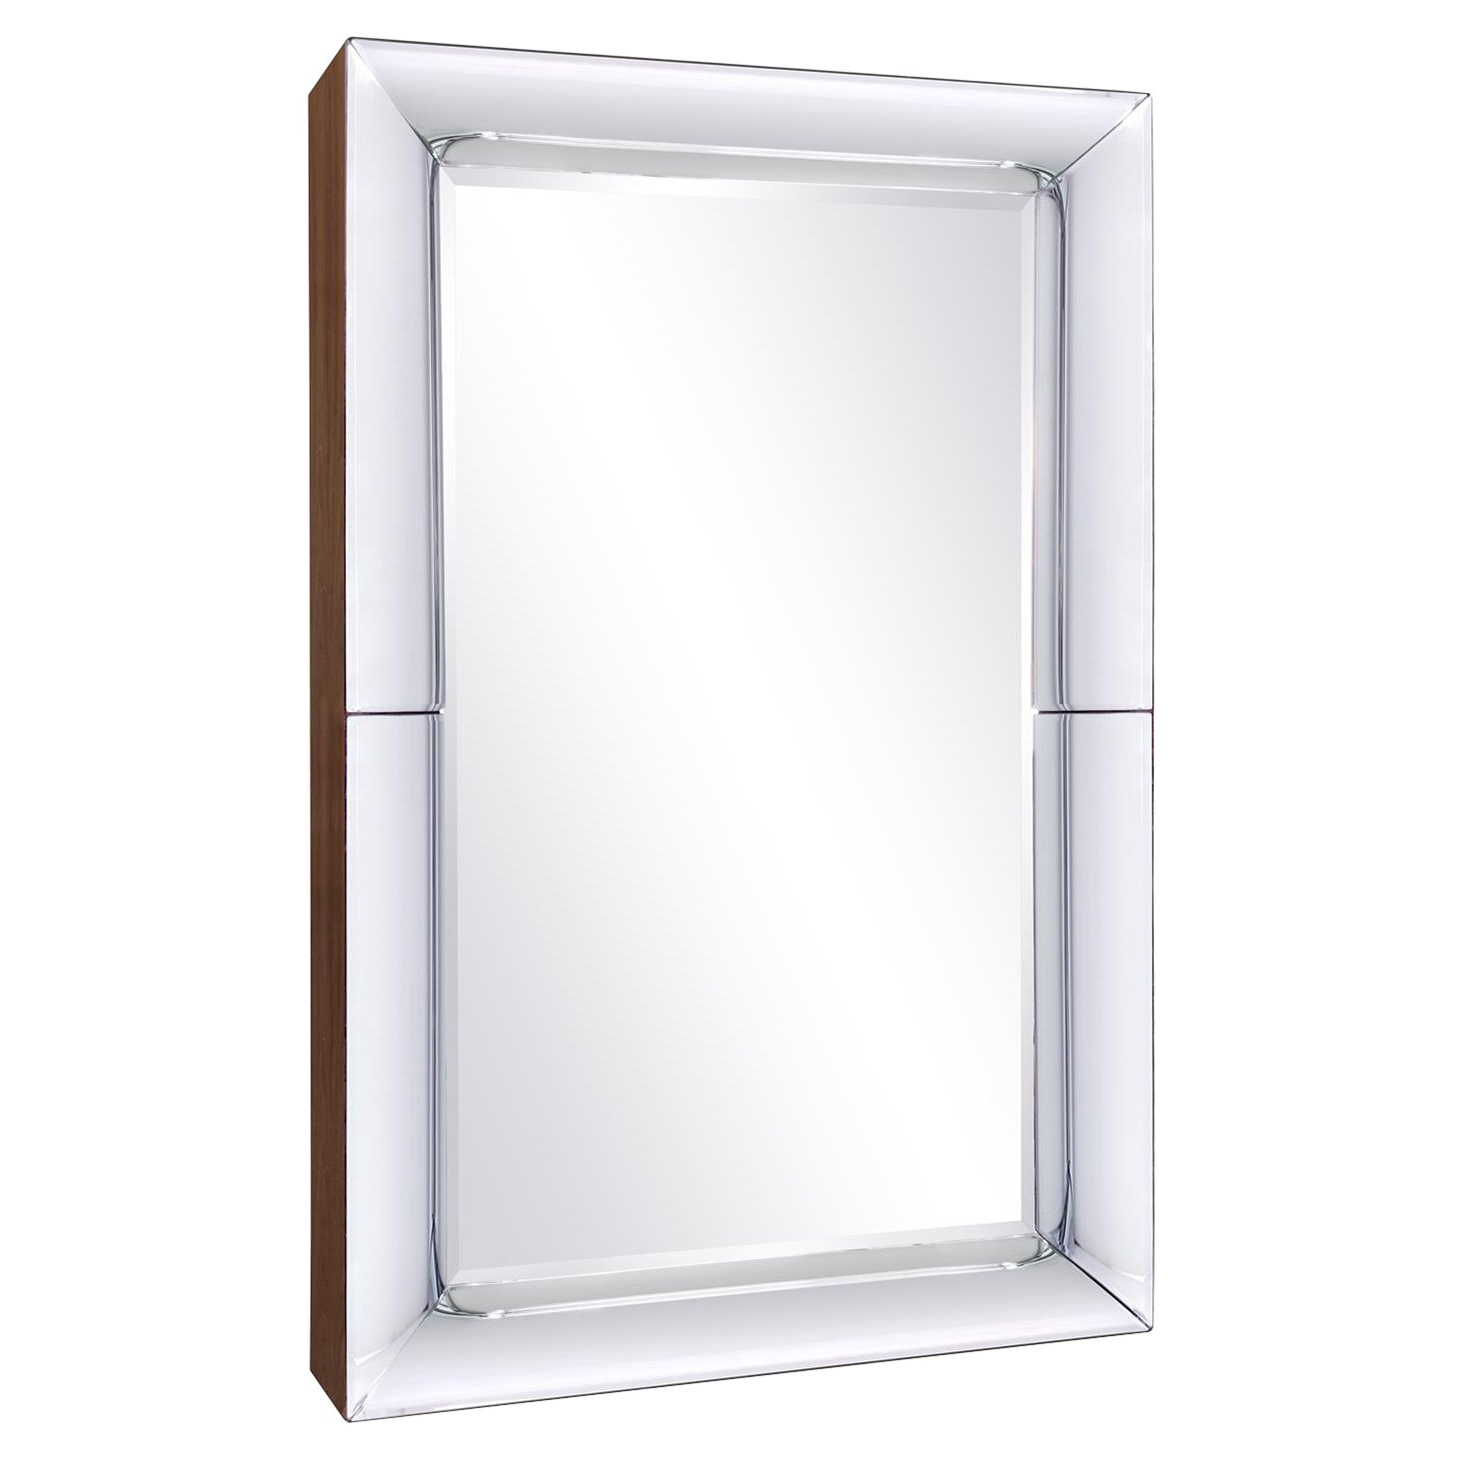 Amazon: Dawn Modern Classic Pieced Concave Wall Mirror: Home Pertaining To Most Recent Concave Wall Mirrors (View 3 of 20)